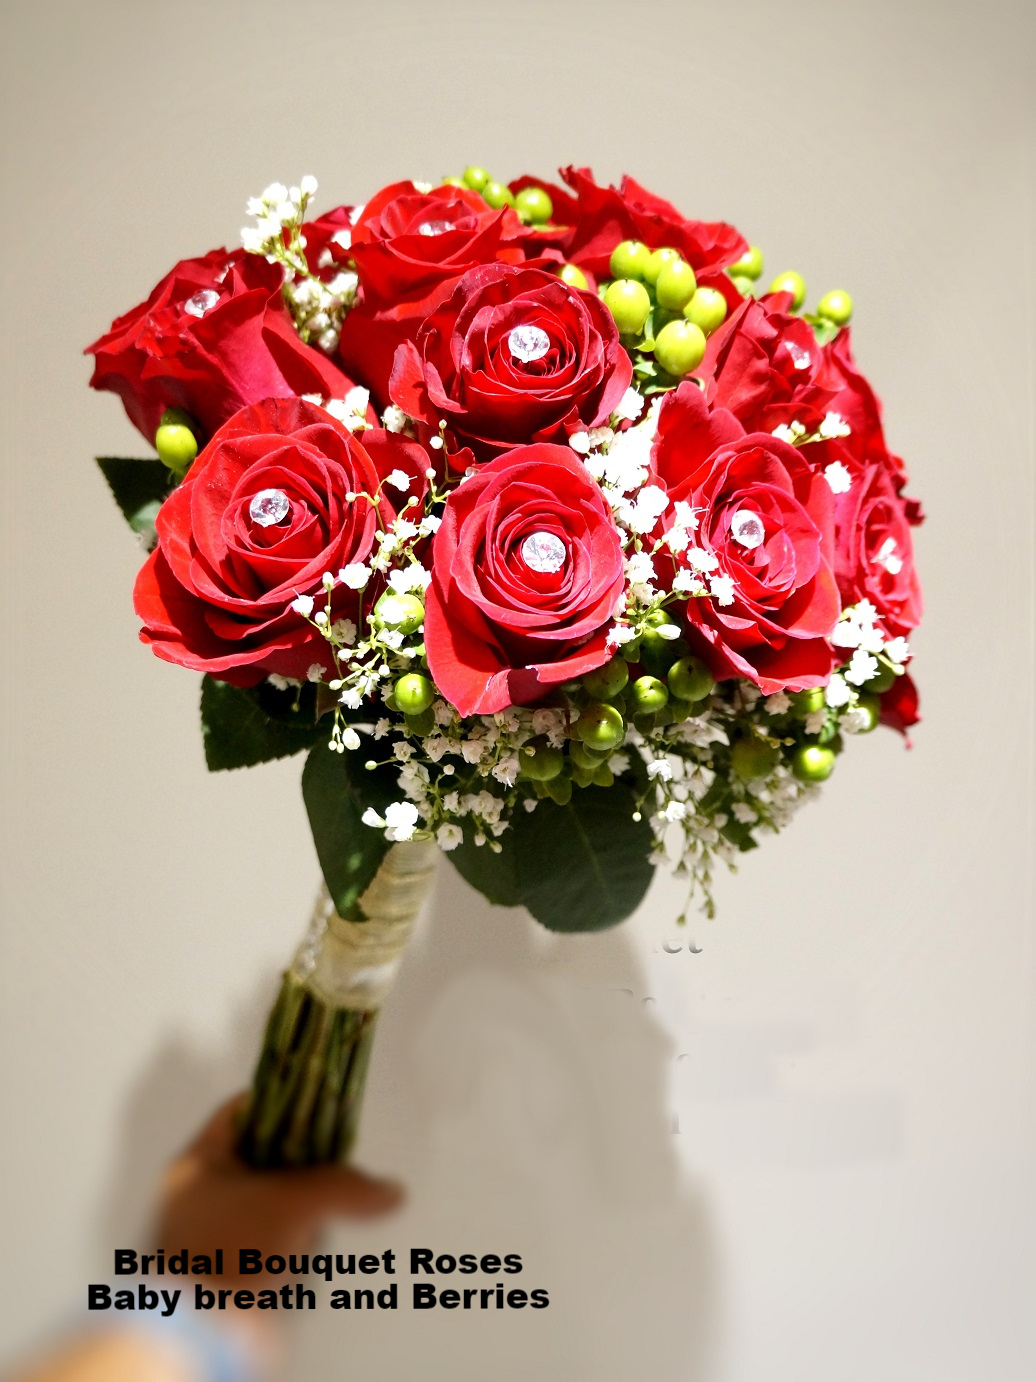 Bridal Bouquet Roses /Baby breath and Berries